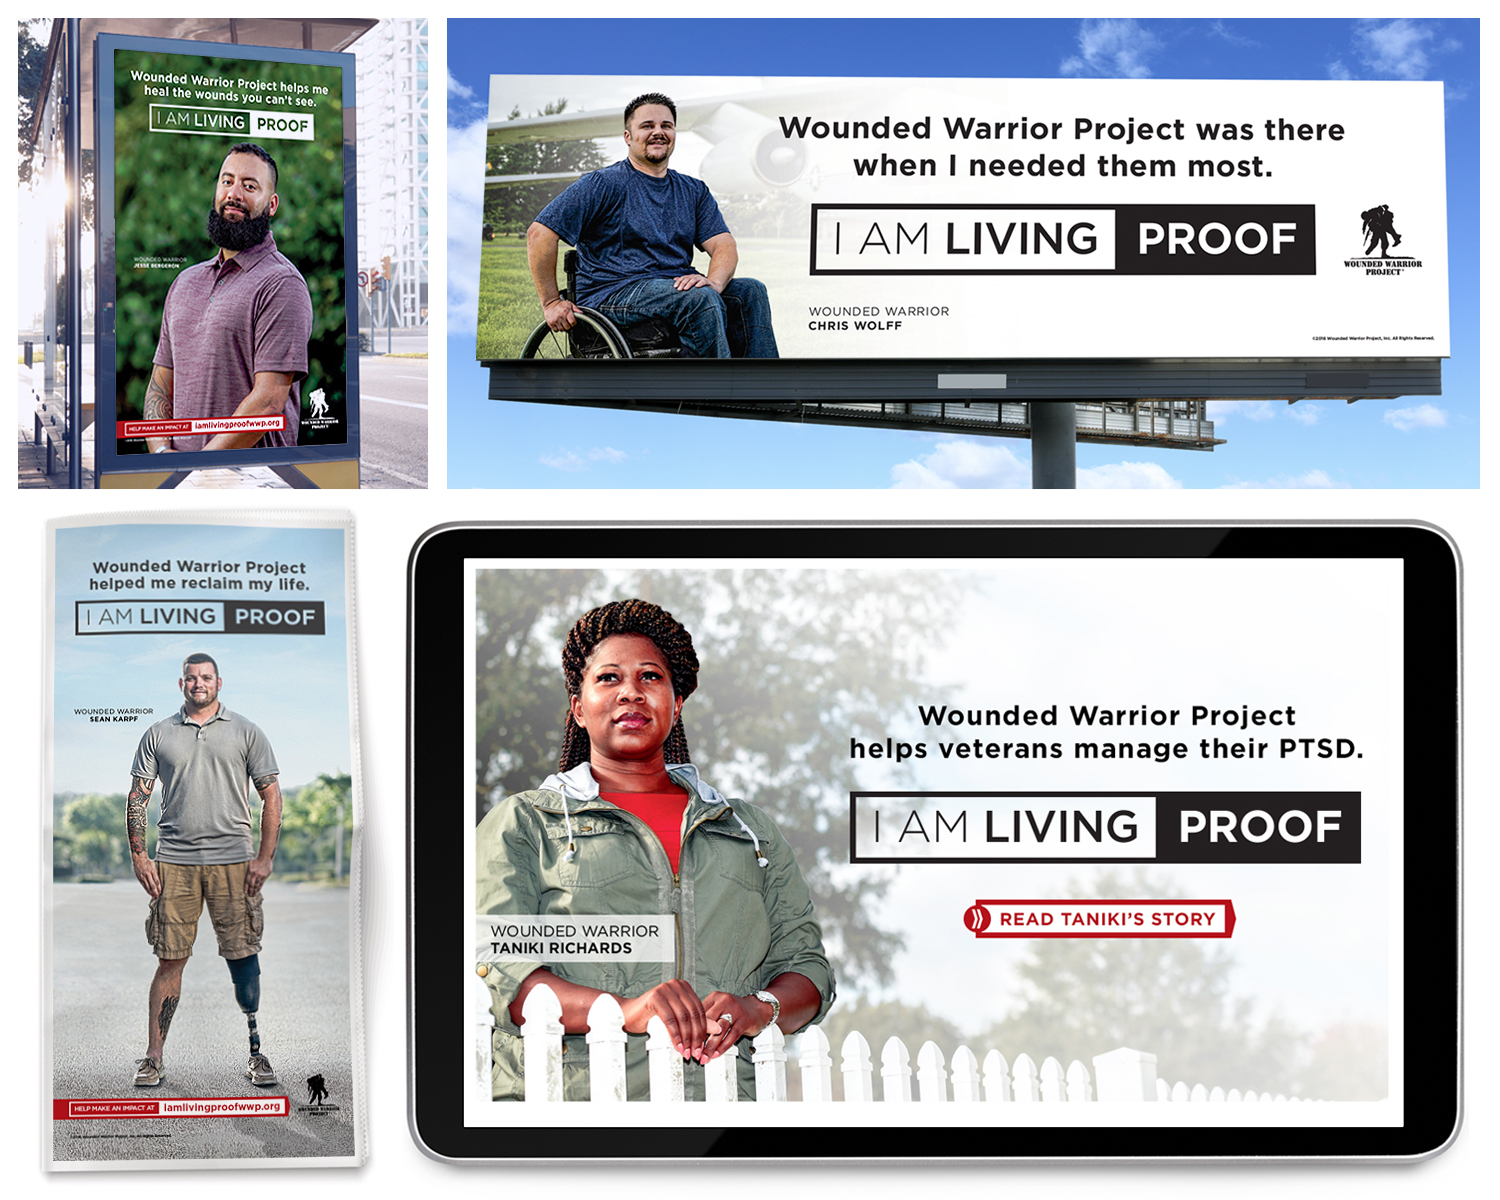 """National Branding and Advertising for """"I AM LIVING PROOF"""" Campaign"""